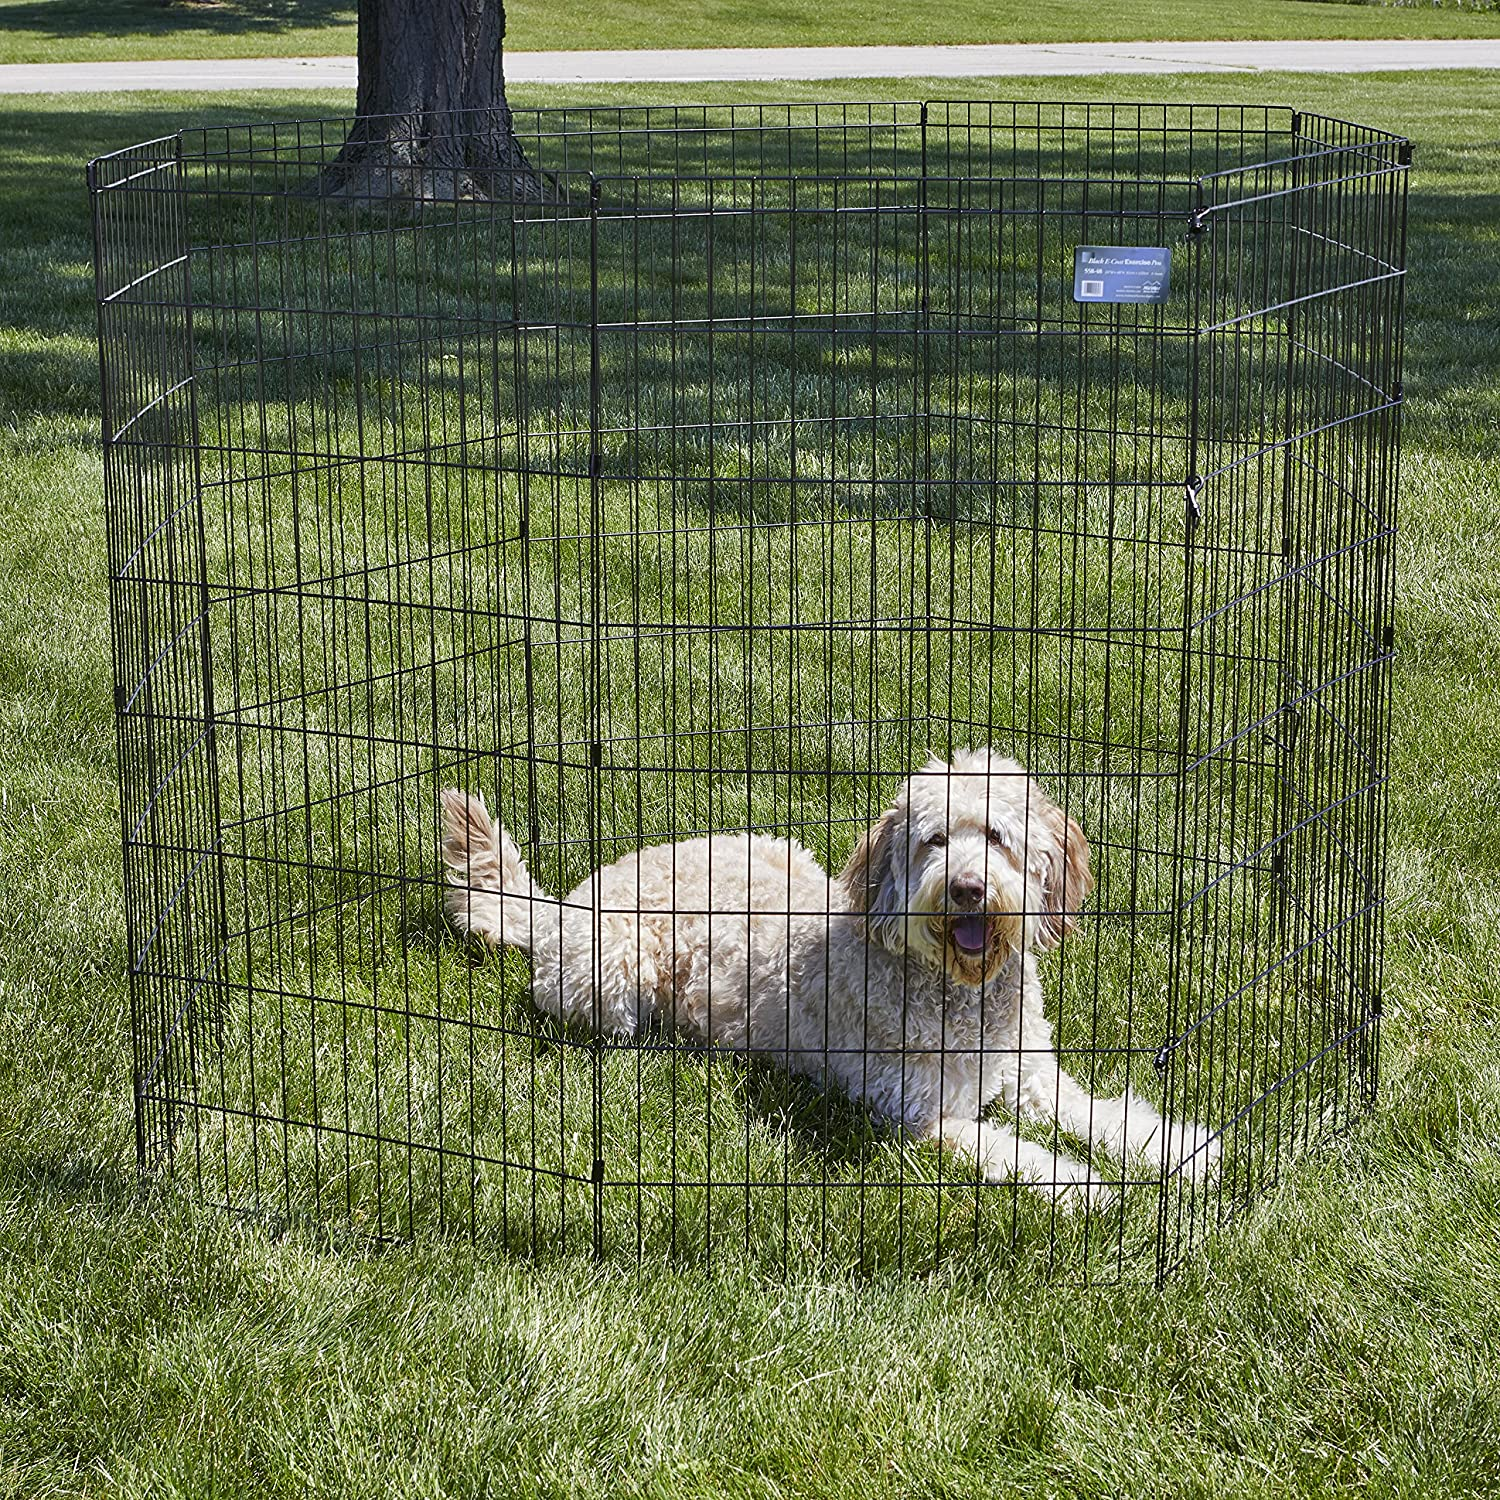 Daily Deals On Pet Essentials Every Animal Lover Should Have - Foldable Pet Pen